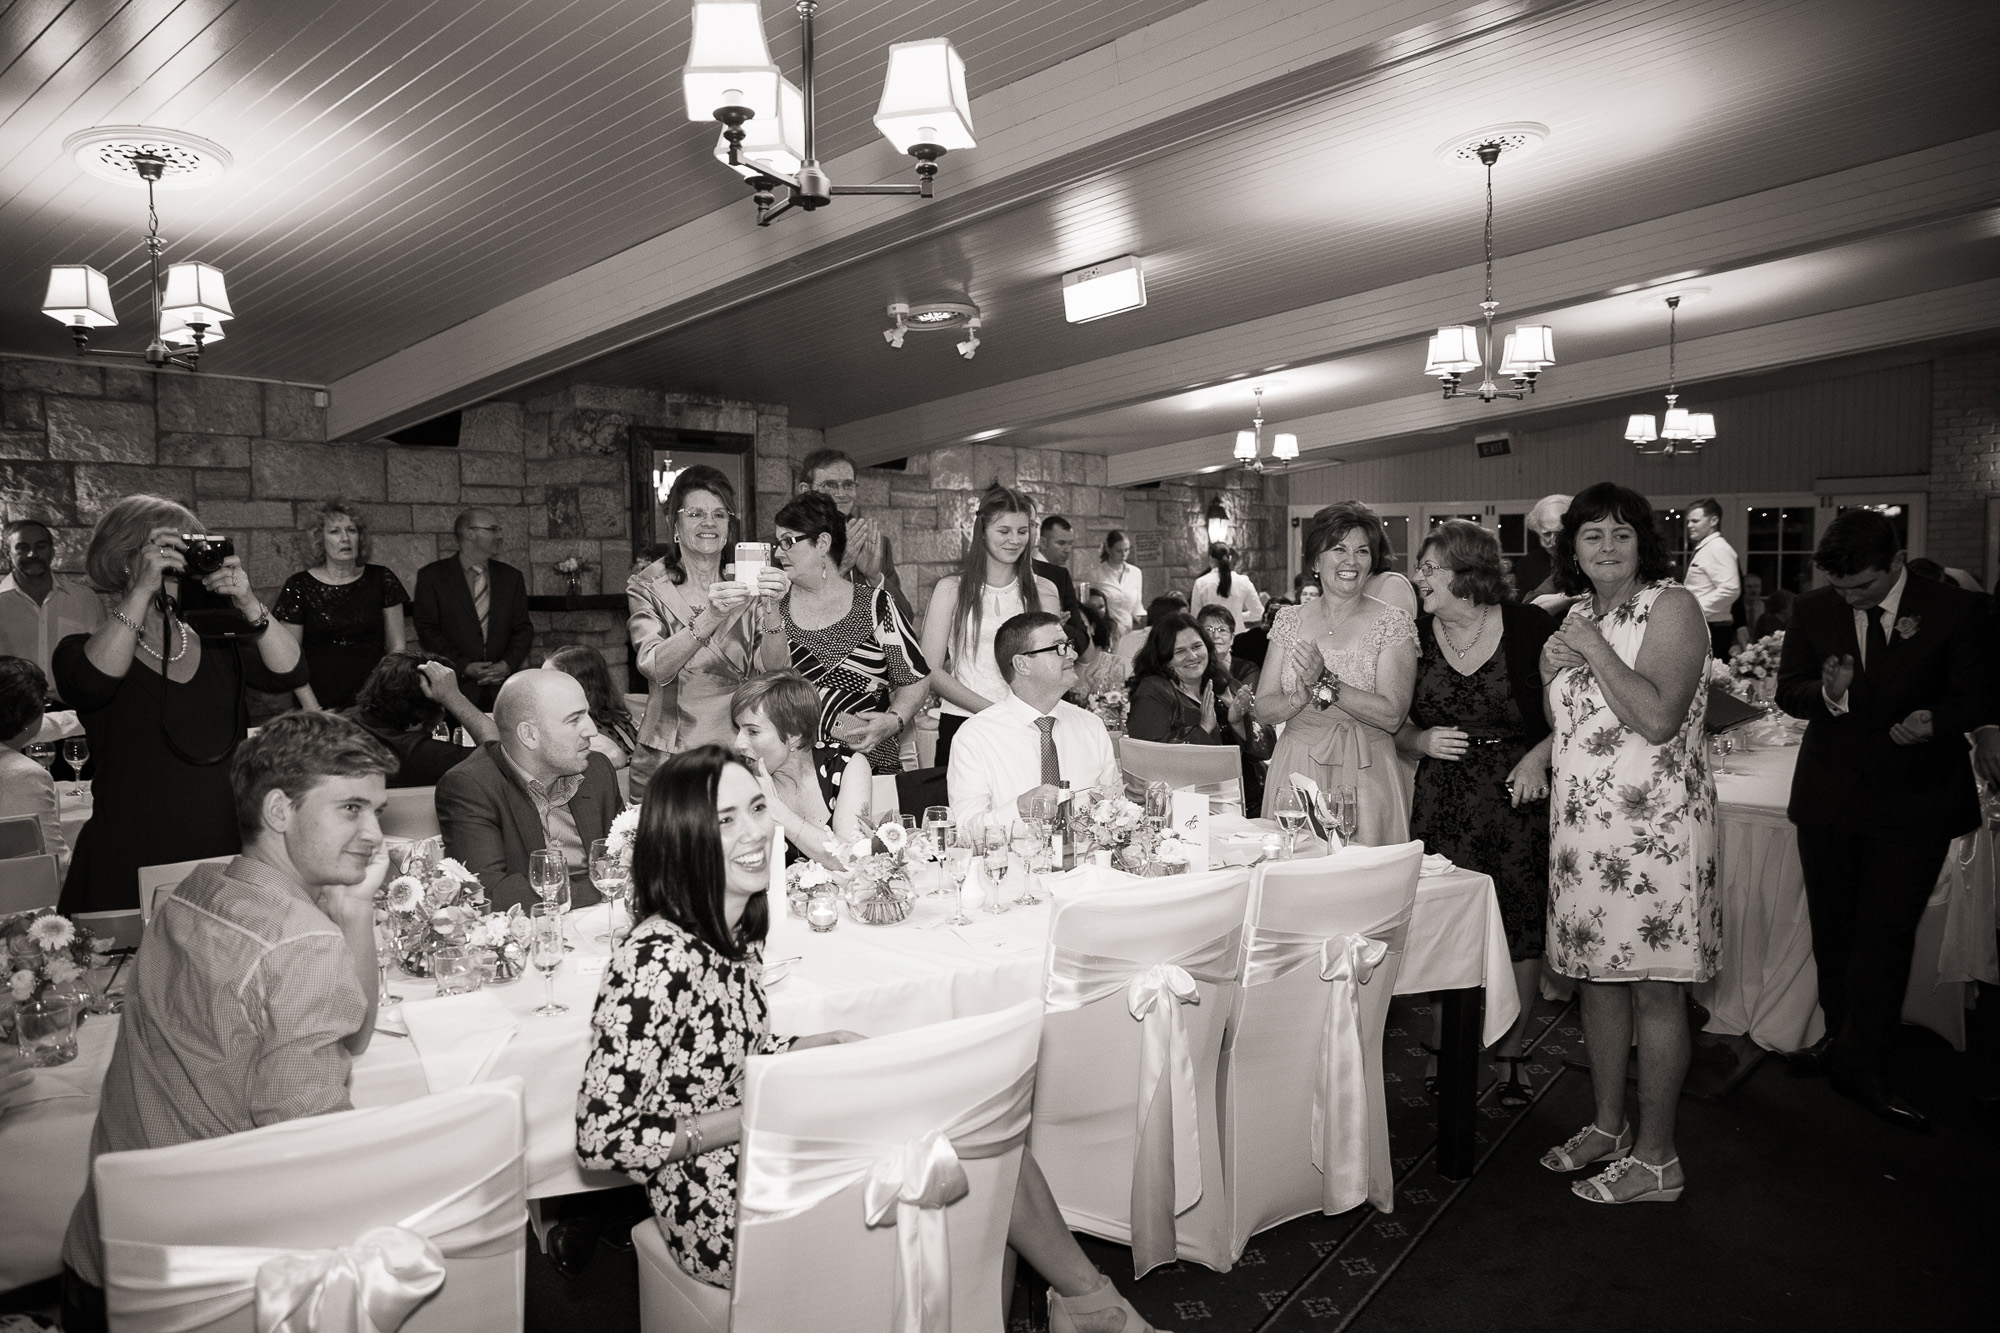 wedding-photographer-brisbane-24.jpg